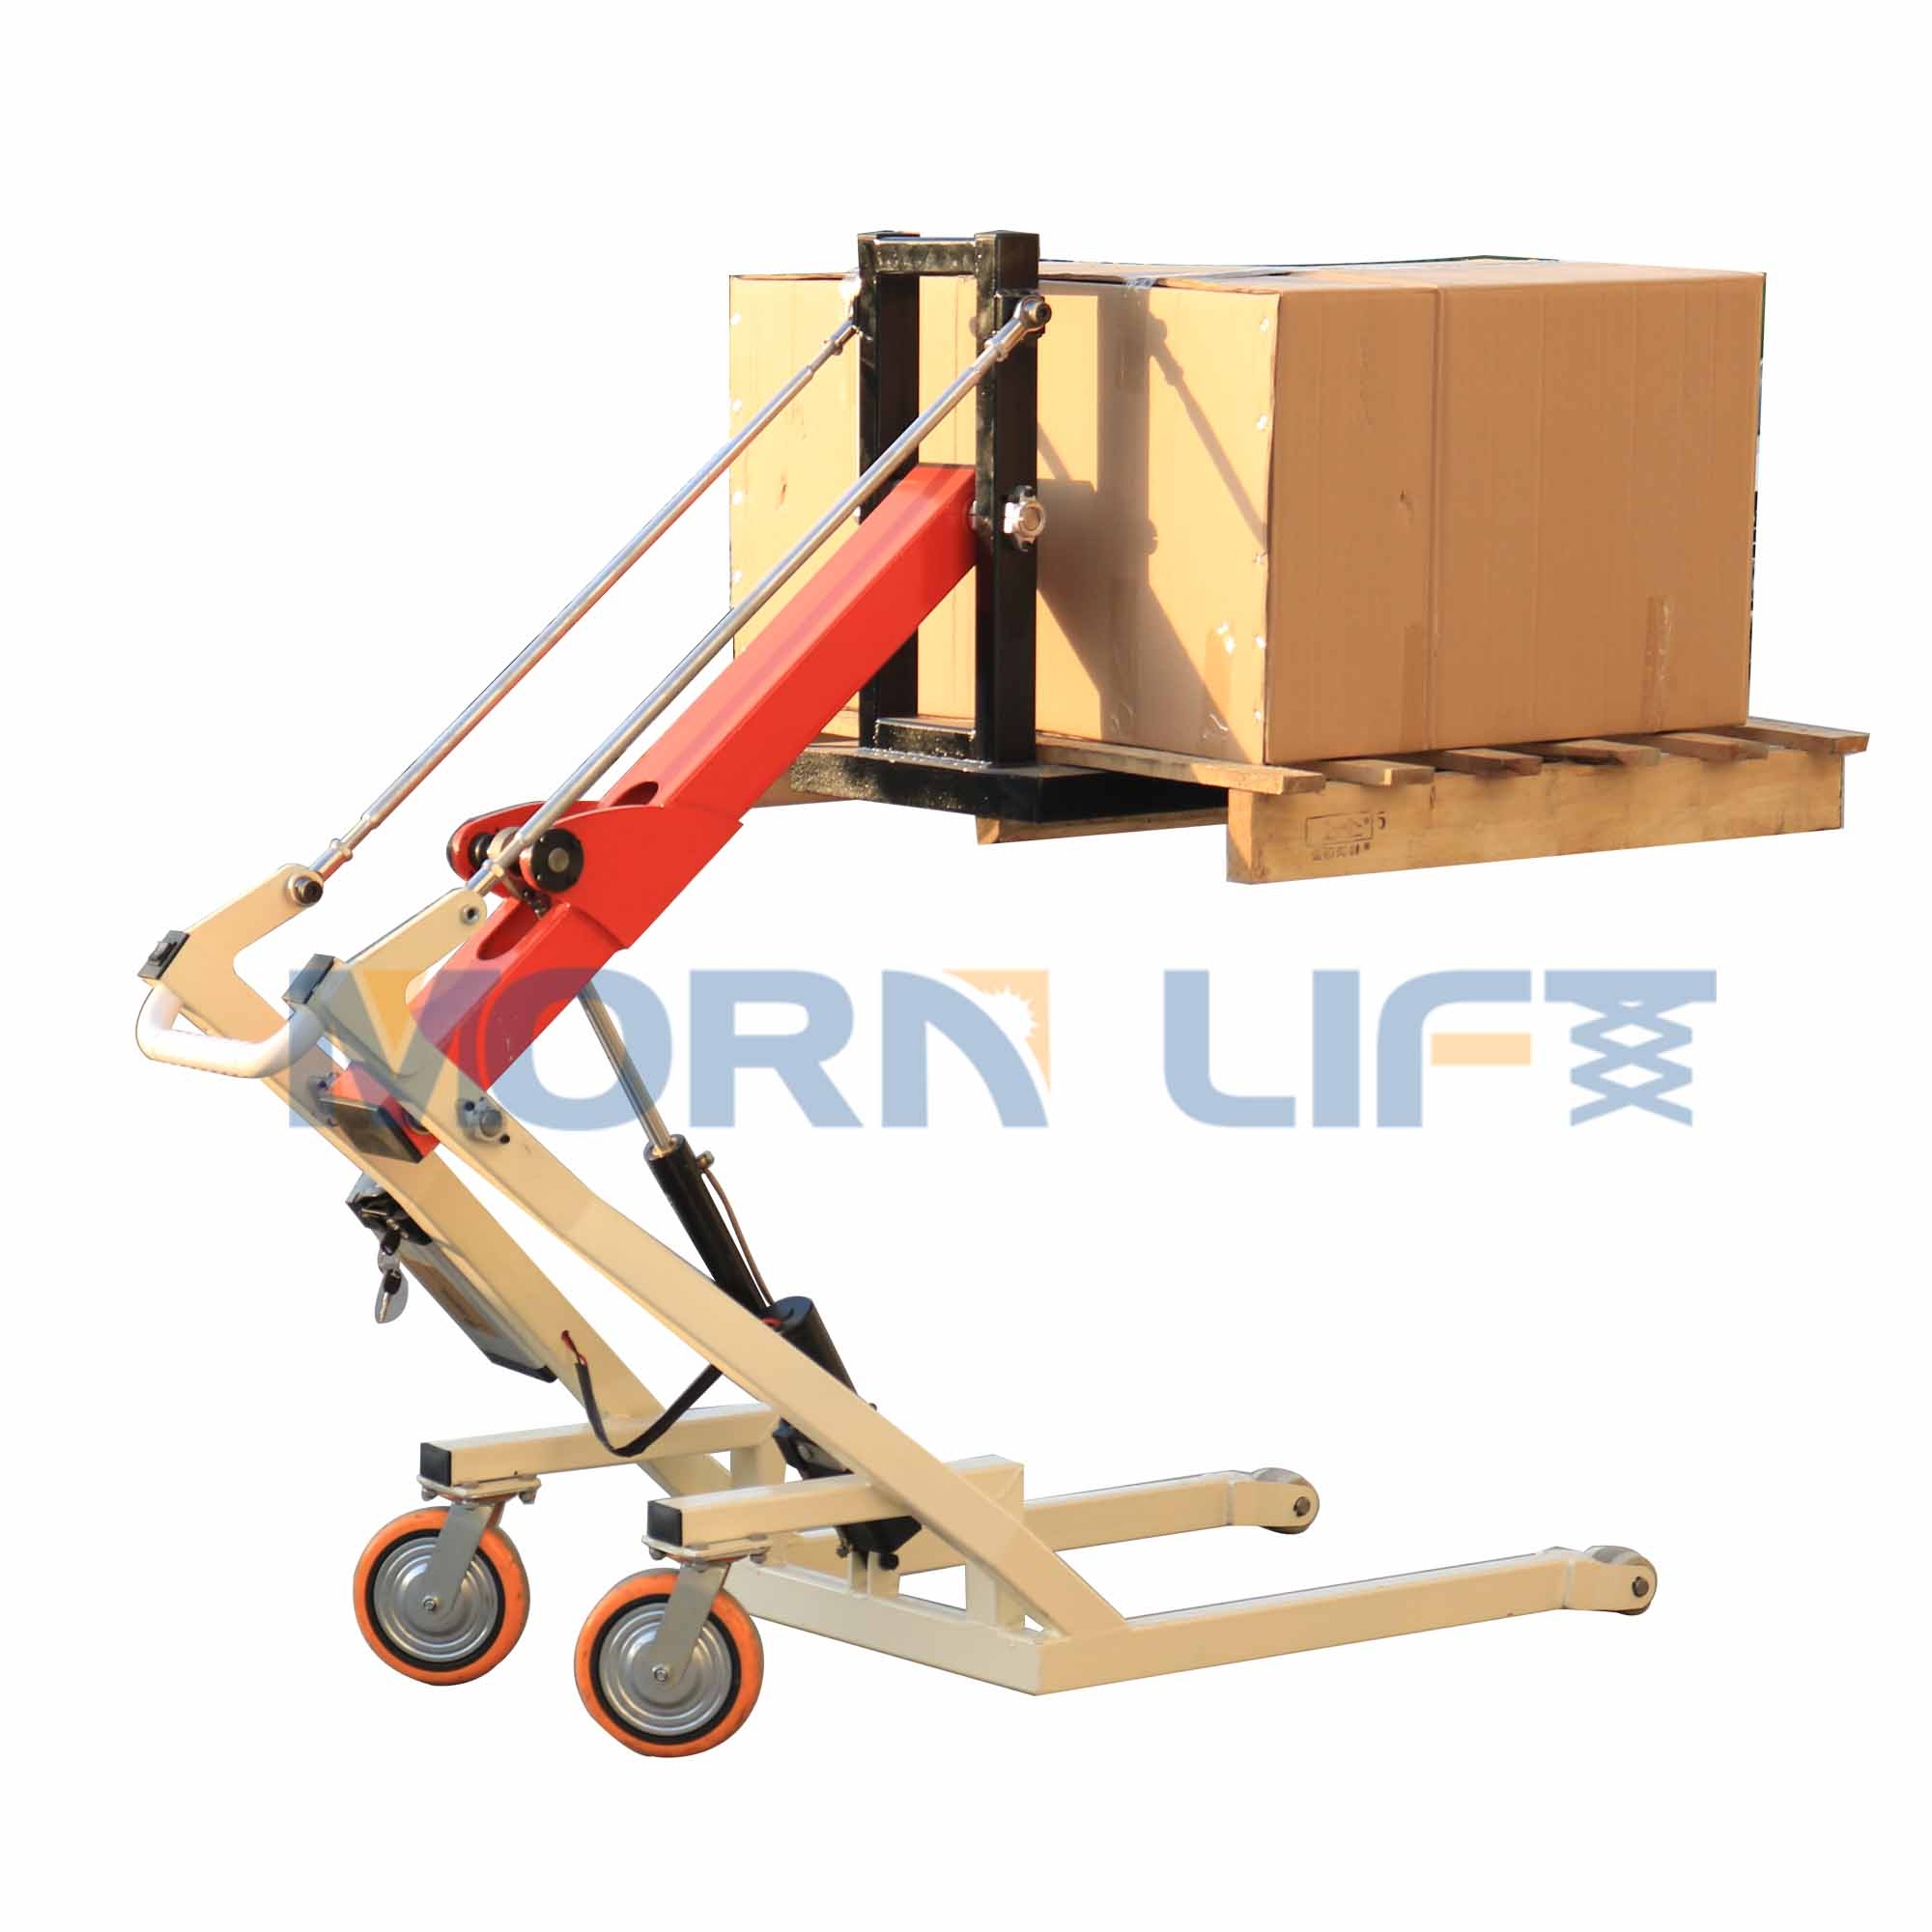 Pallet With 300kg Load Capacity Ideal Facility To Unload Goods In Stacking Warehouses, Super Market, Workshops, Production Lines